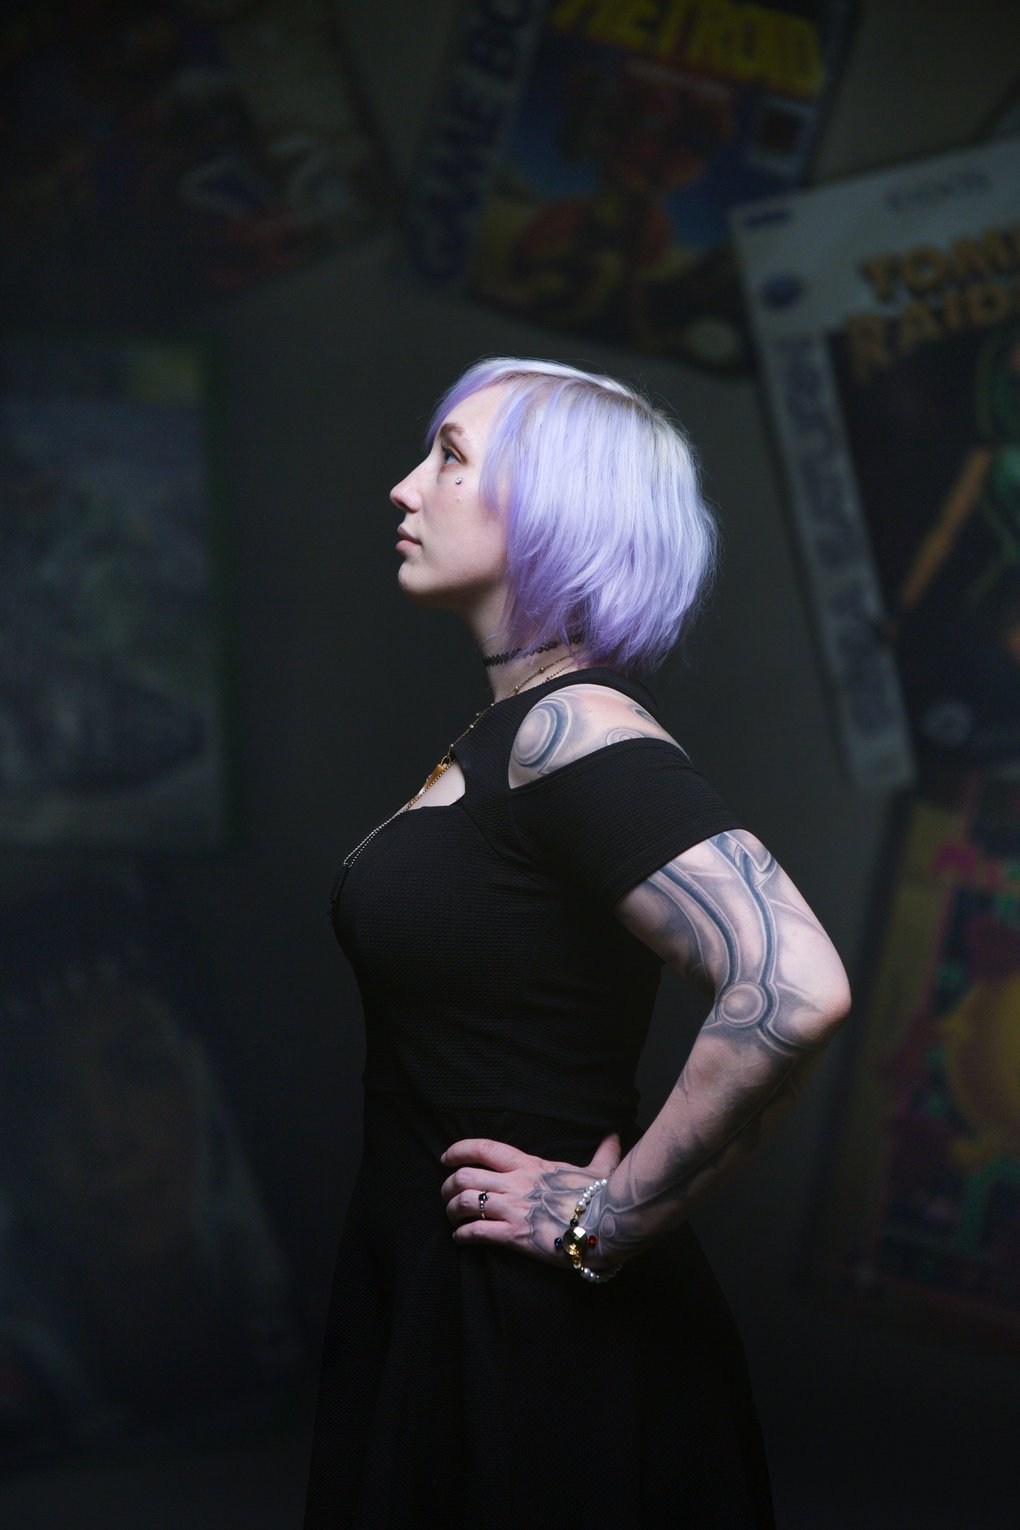 Naked zoe quinn Nudography